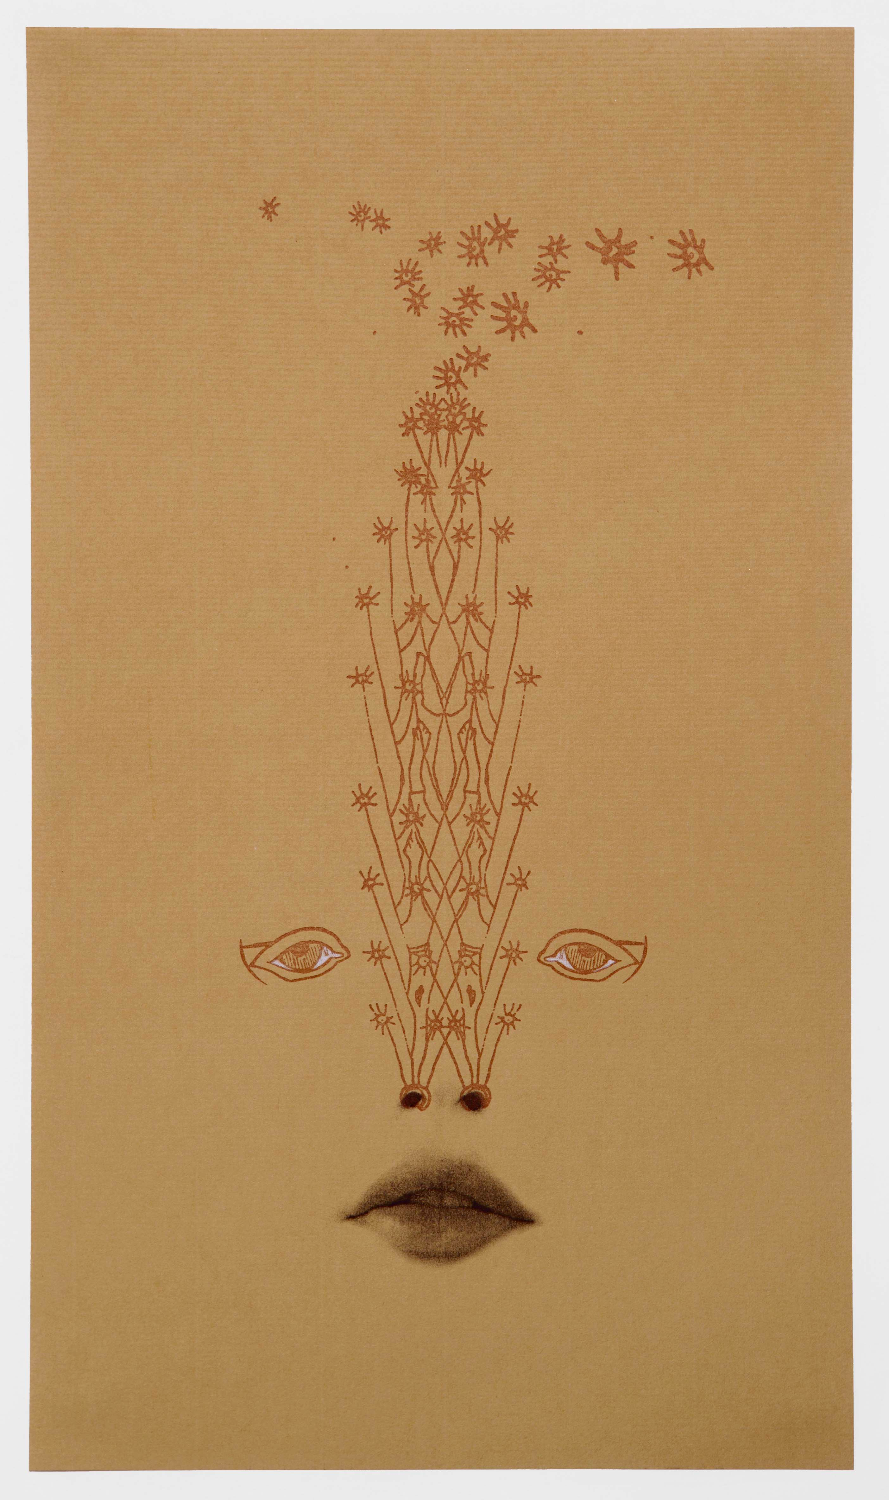 Stardust , 2010  Letterpress print on paper  12 x 7 inches